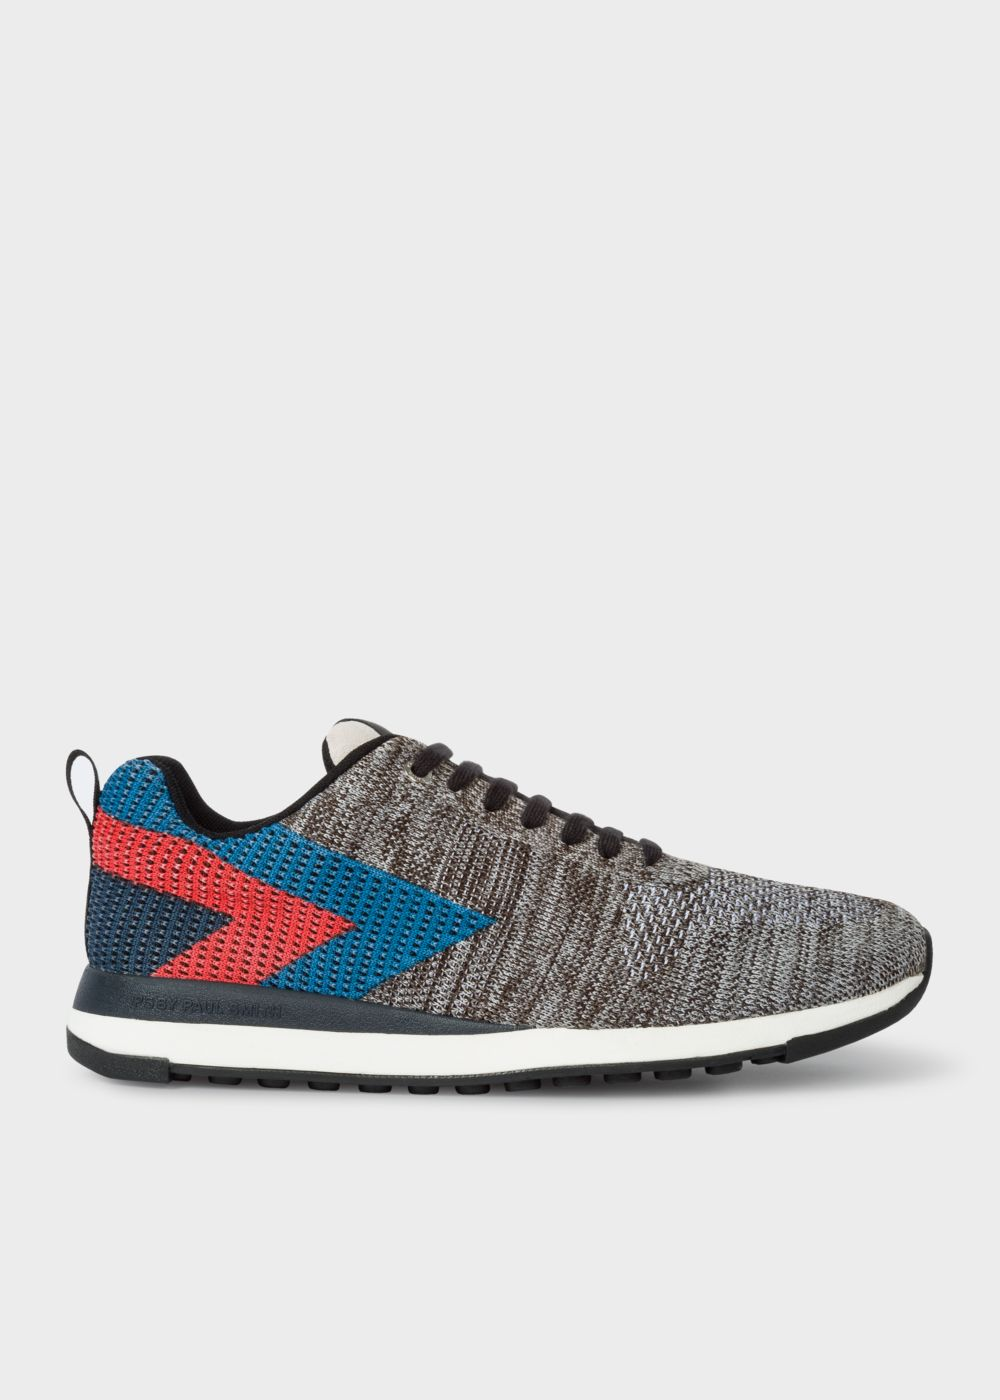 Paul Smith Men's Grey Mlange 'Rappid' Knitted Trainers